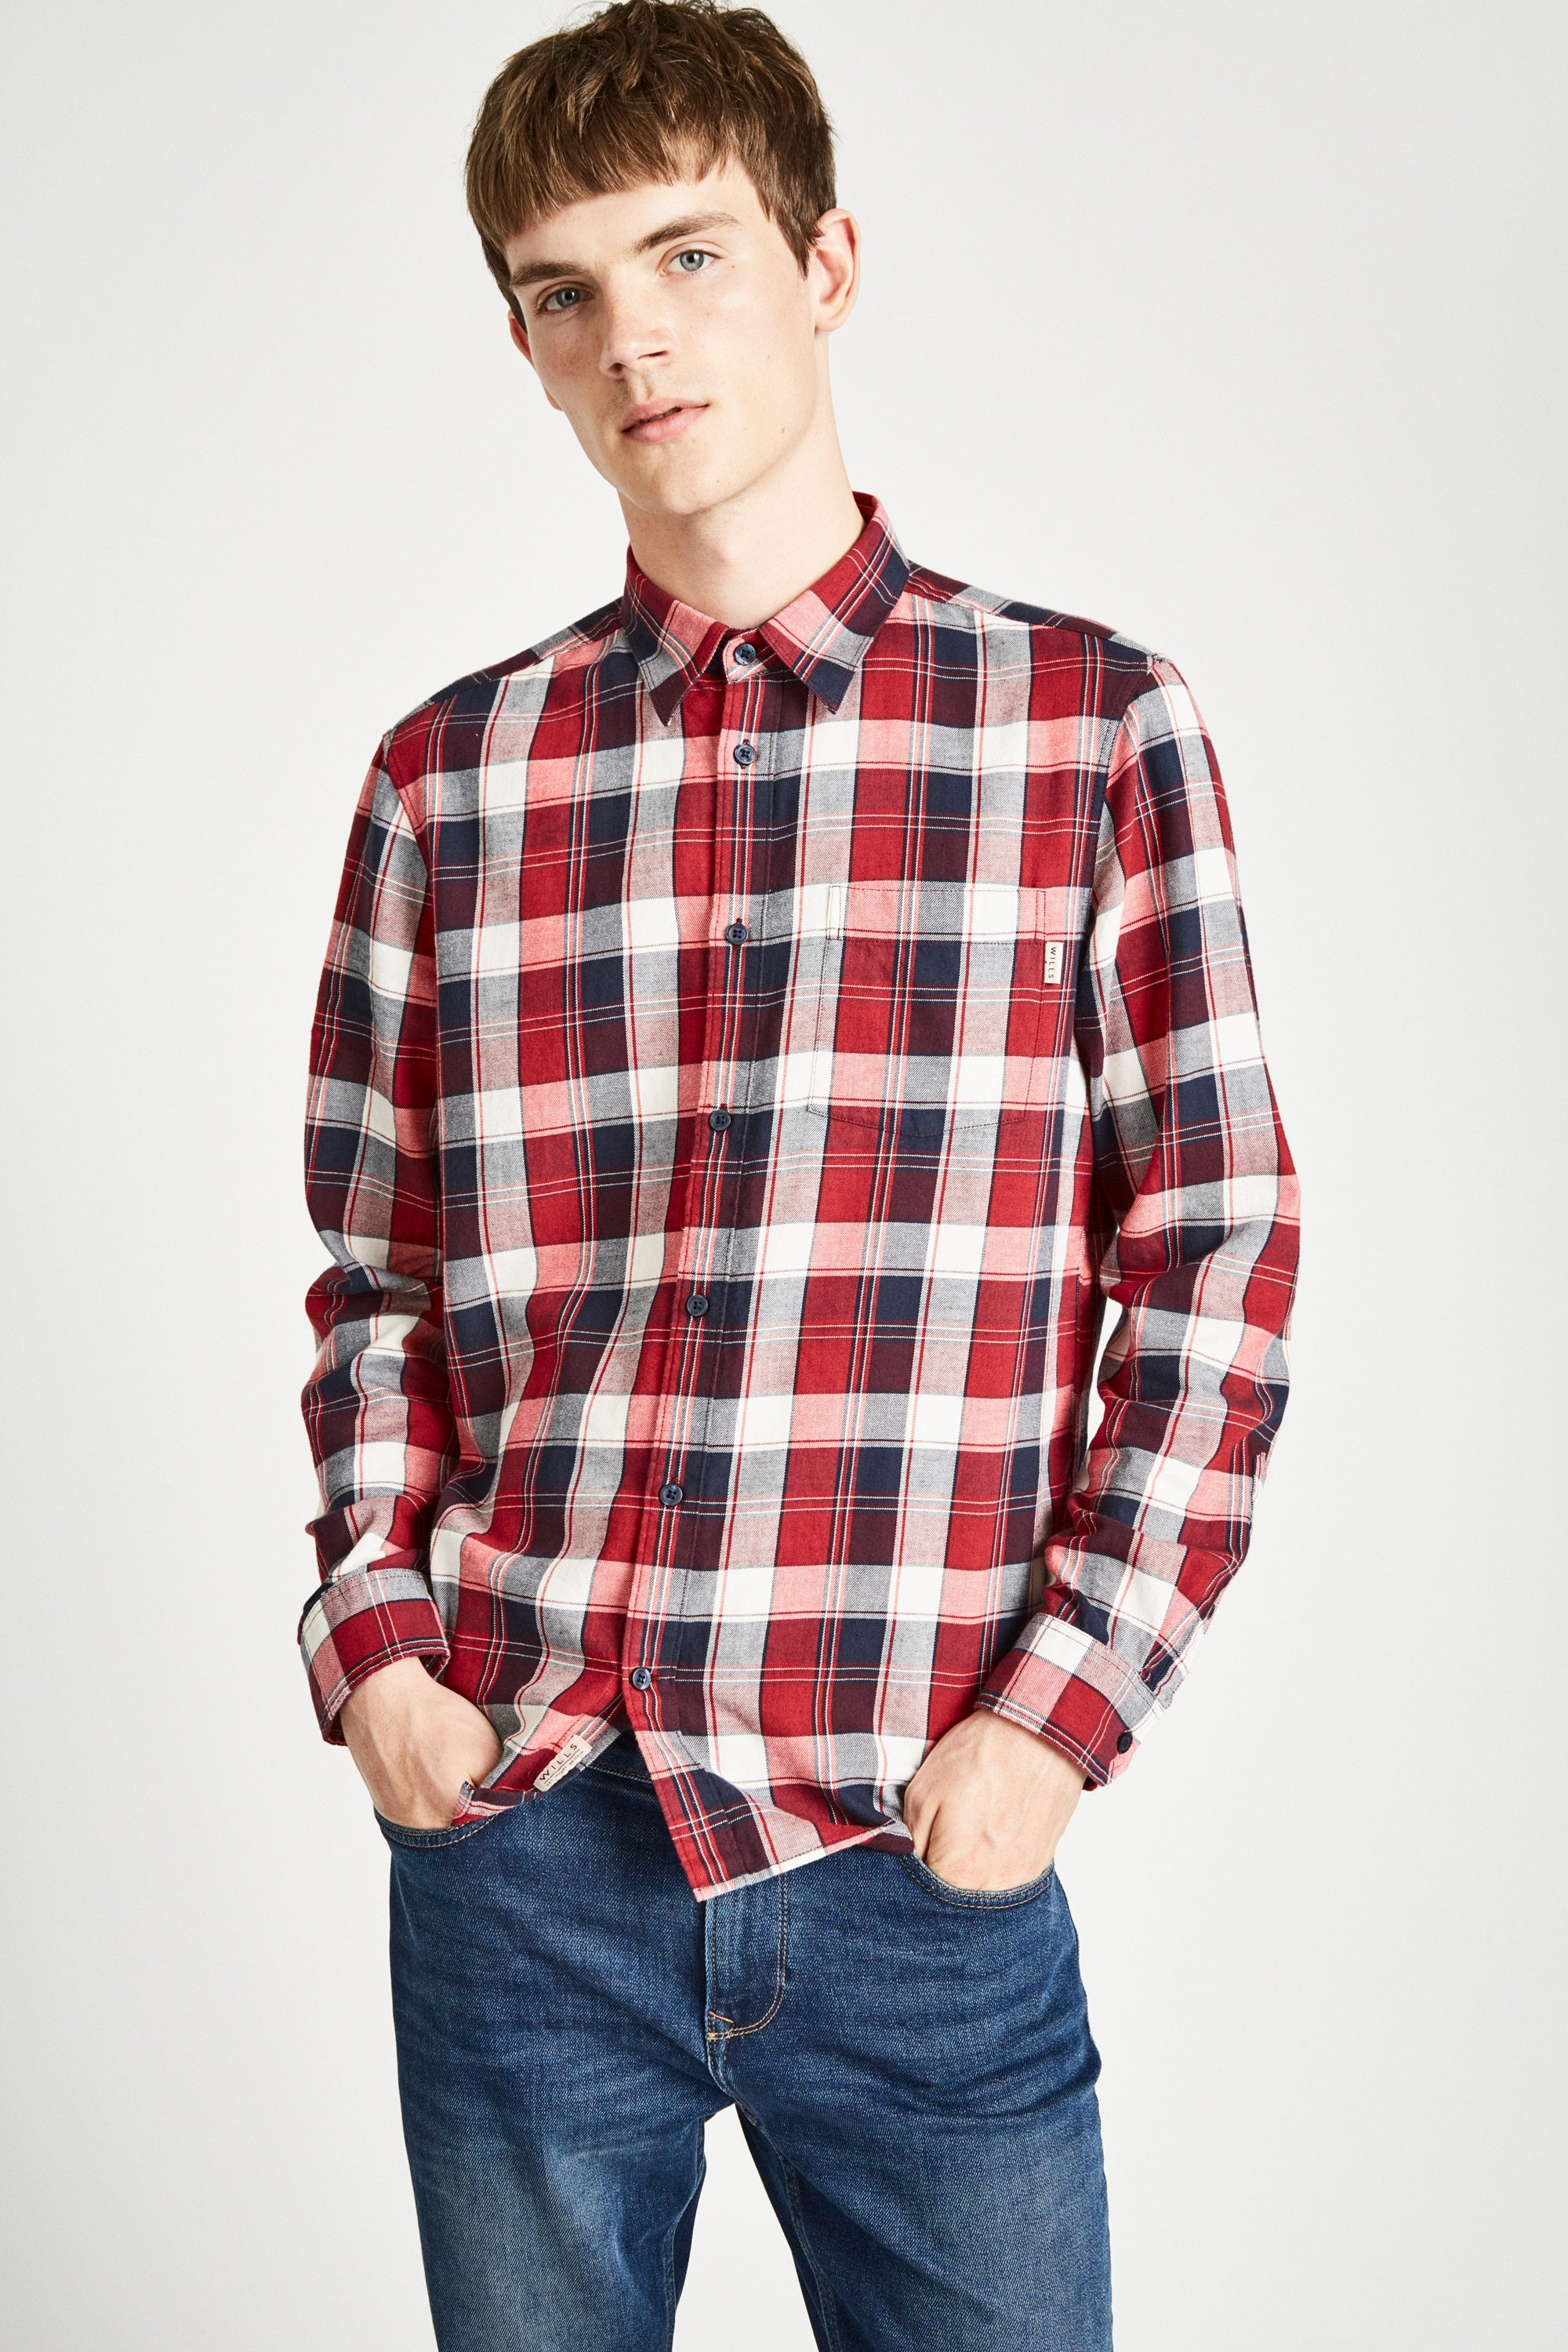 Jack Wills Dundry Mw Flannel Shirt